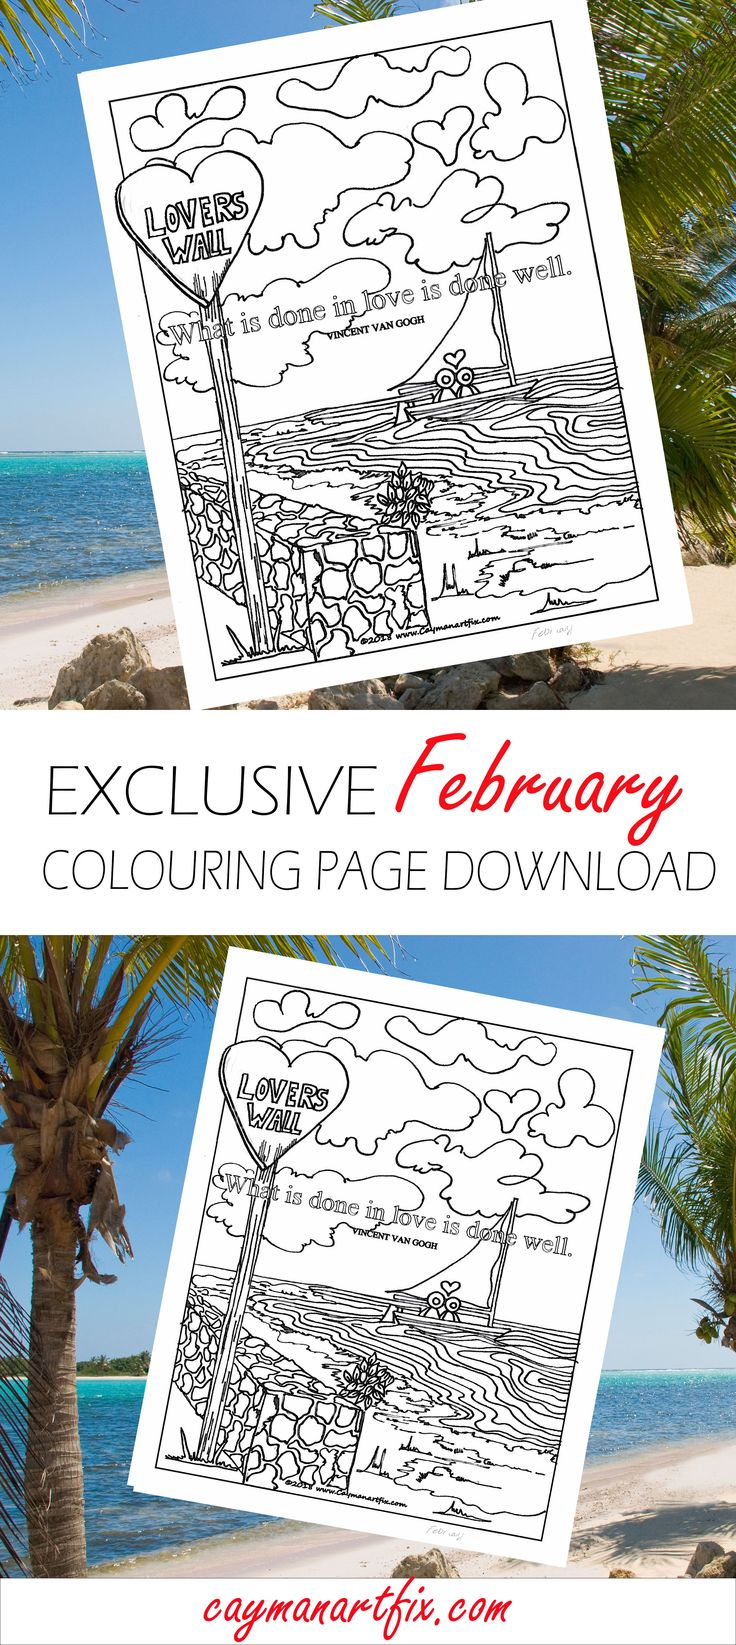 February's free colouring page for the month of love. The Lovers Wall. This page is set against the beautiful East End, Cayman Islands. Download this printable colouring page instantly by signing up today.  #adultcoloring #download #printable #february #loverswall #eastend #coloringpage #free #monthoflove #caymanart